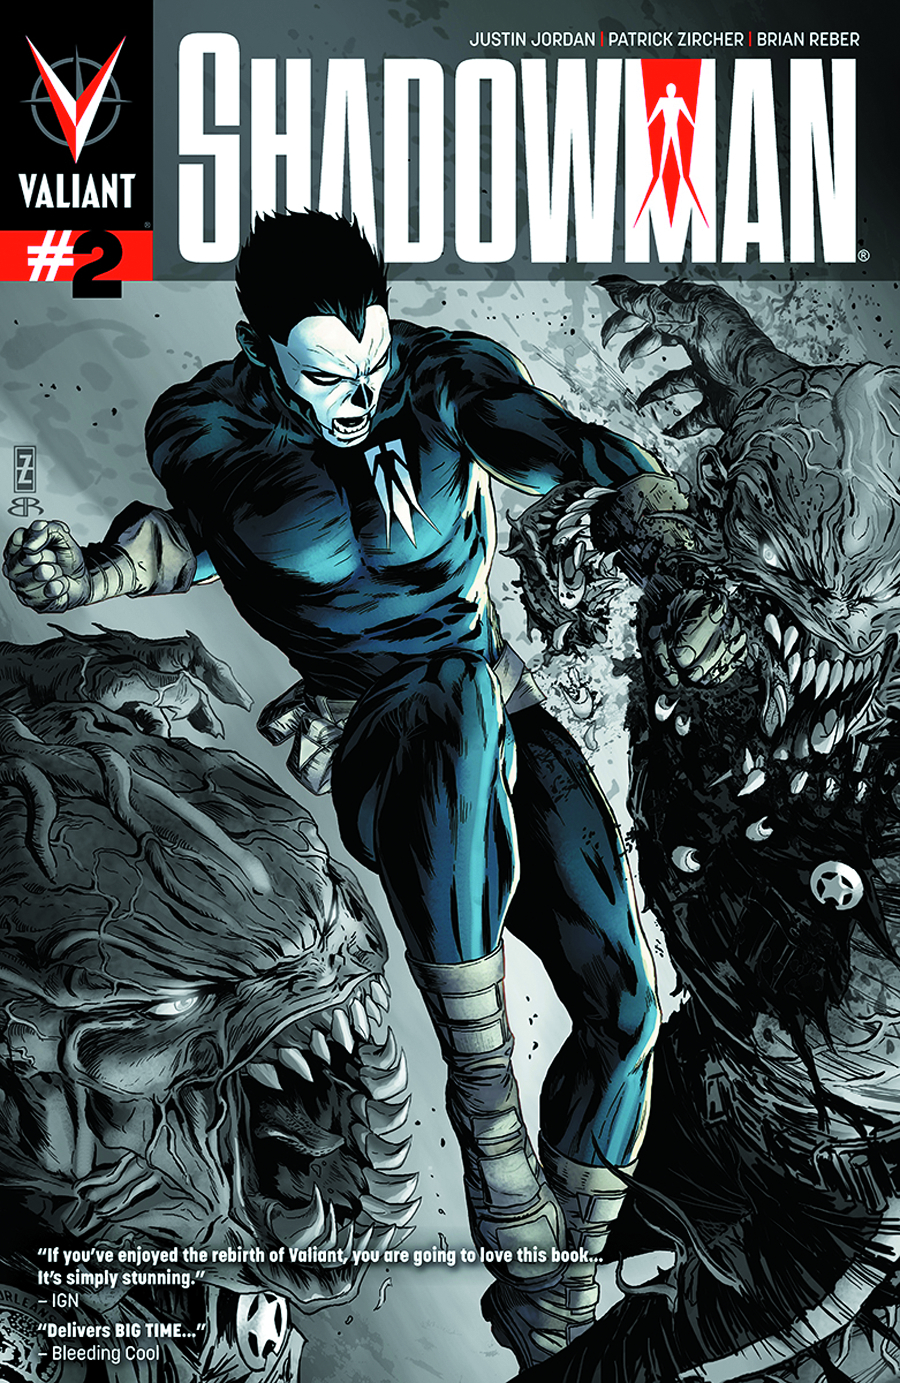 SHADOWMAN #2 2ND PTG ZIRCHER CVR